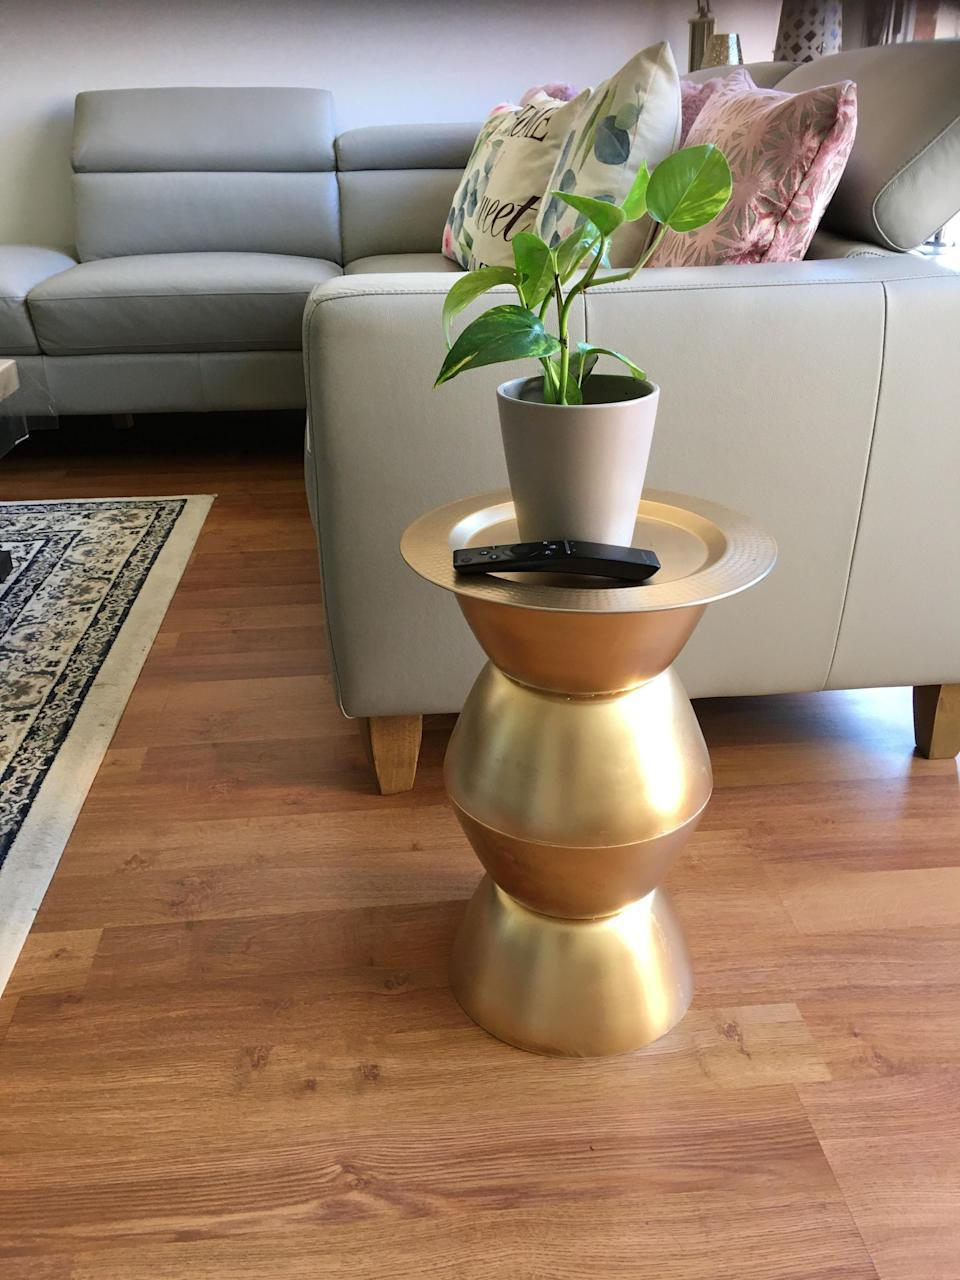 The finished product made a chic addition to Kiran's living room. Photo: Facebook (supplied).